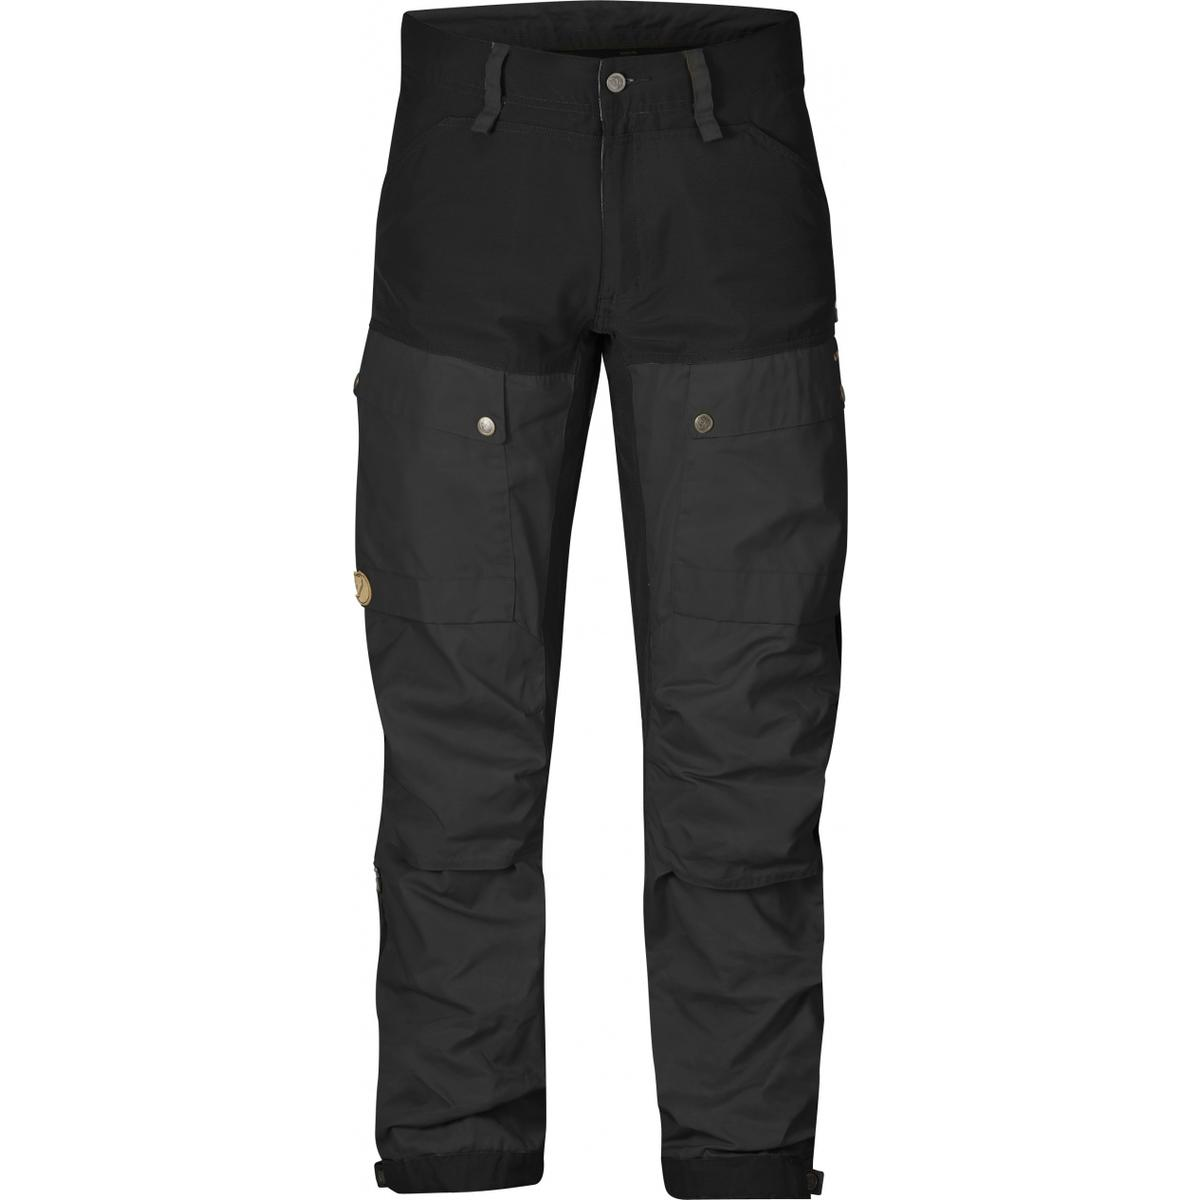 Fjallraven Keb Trouser Regular Men's